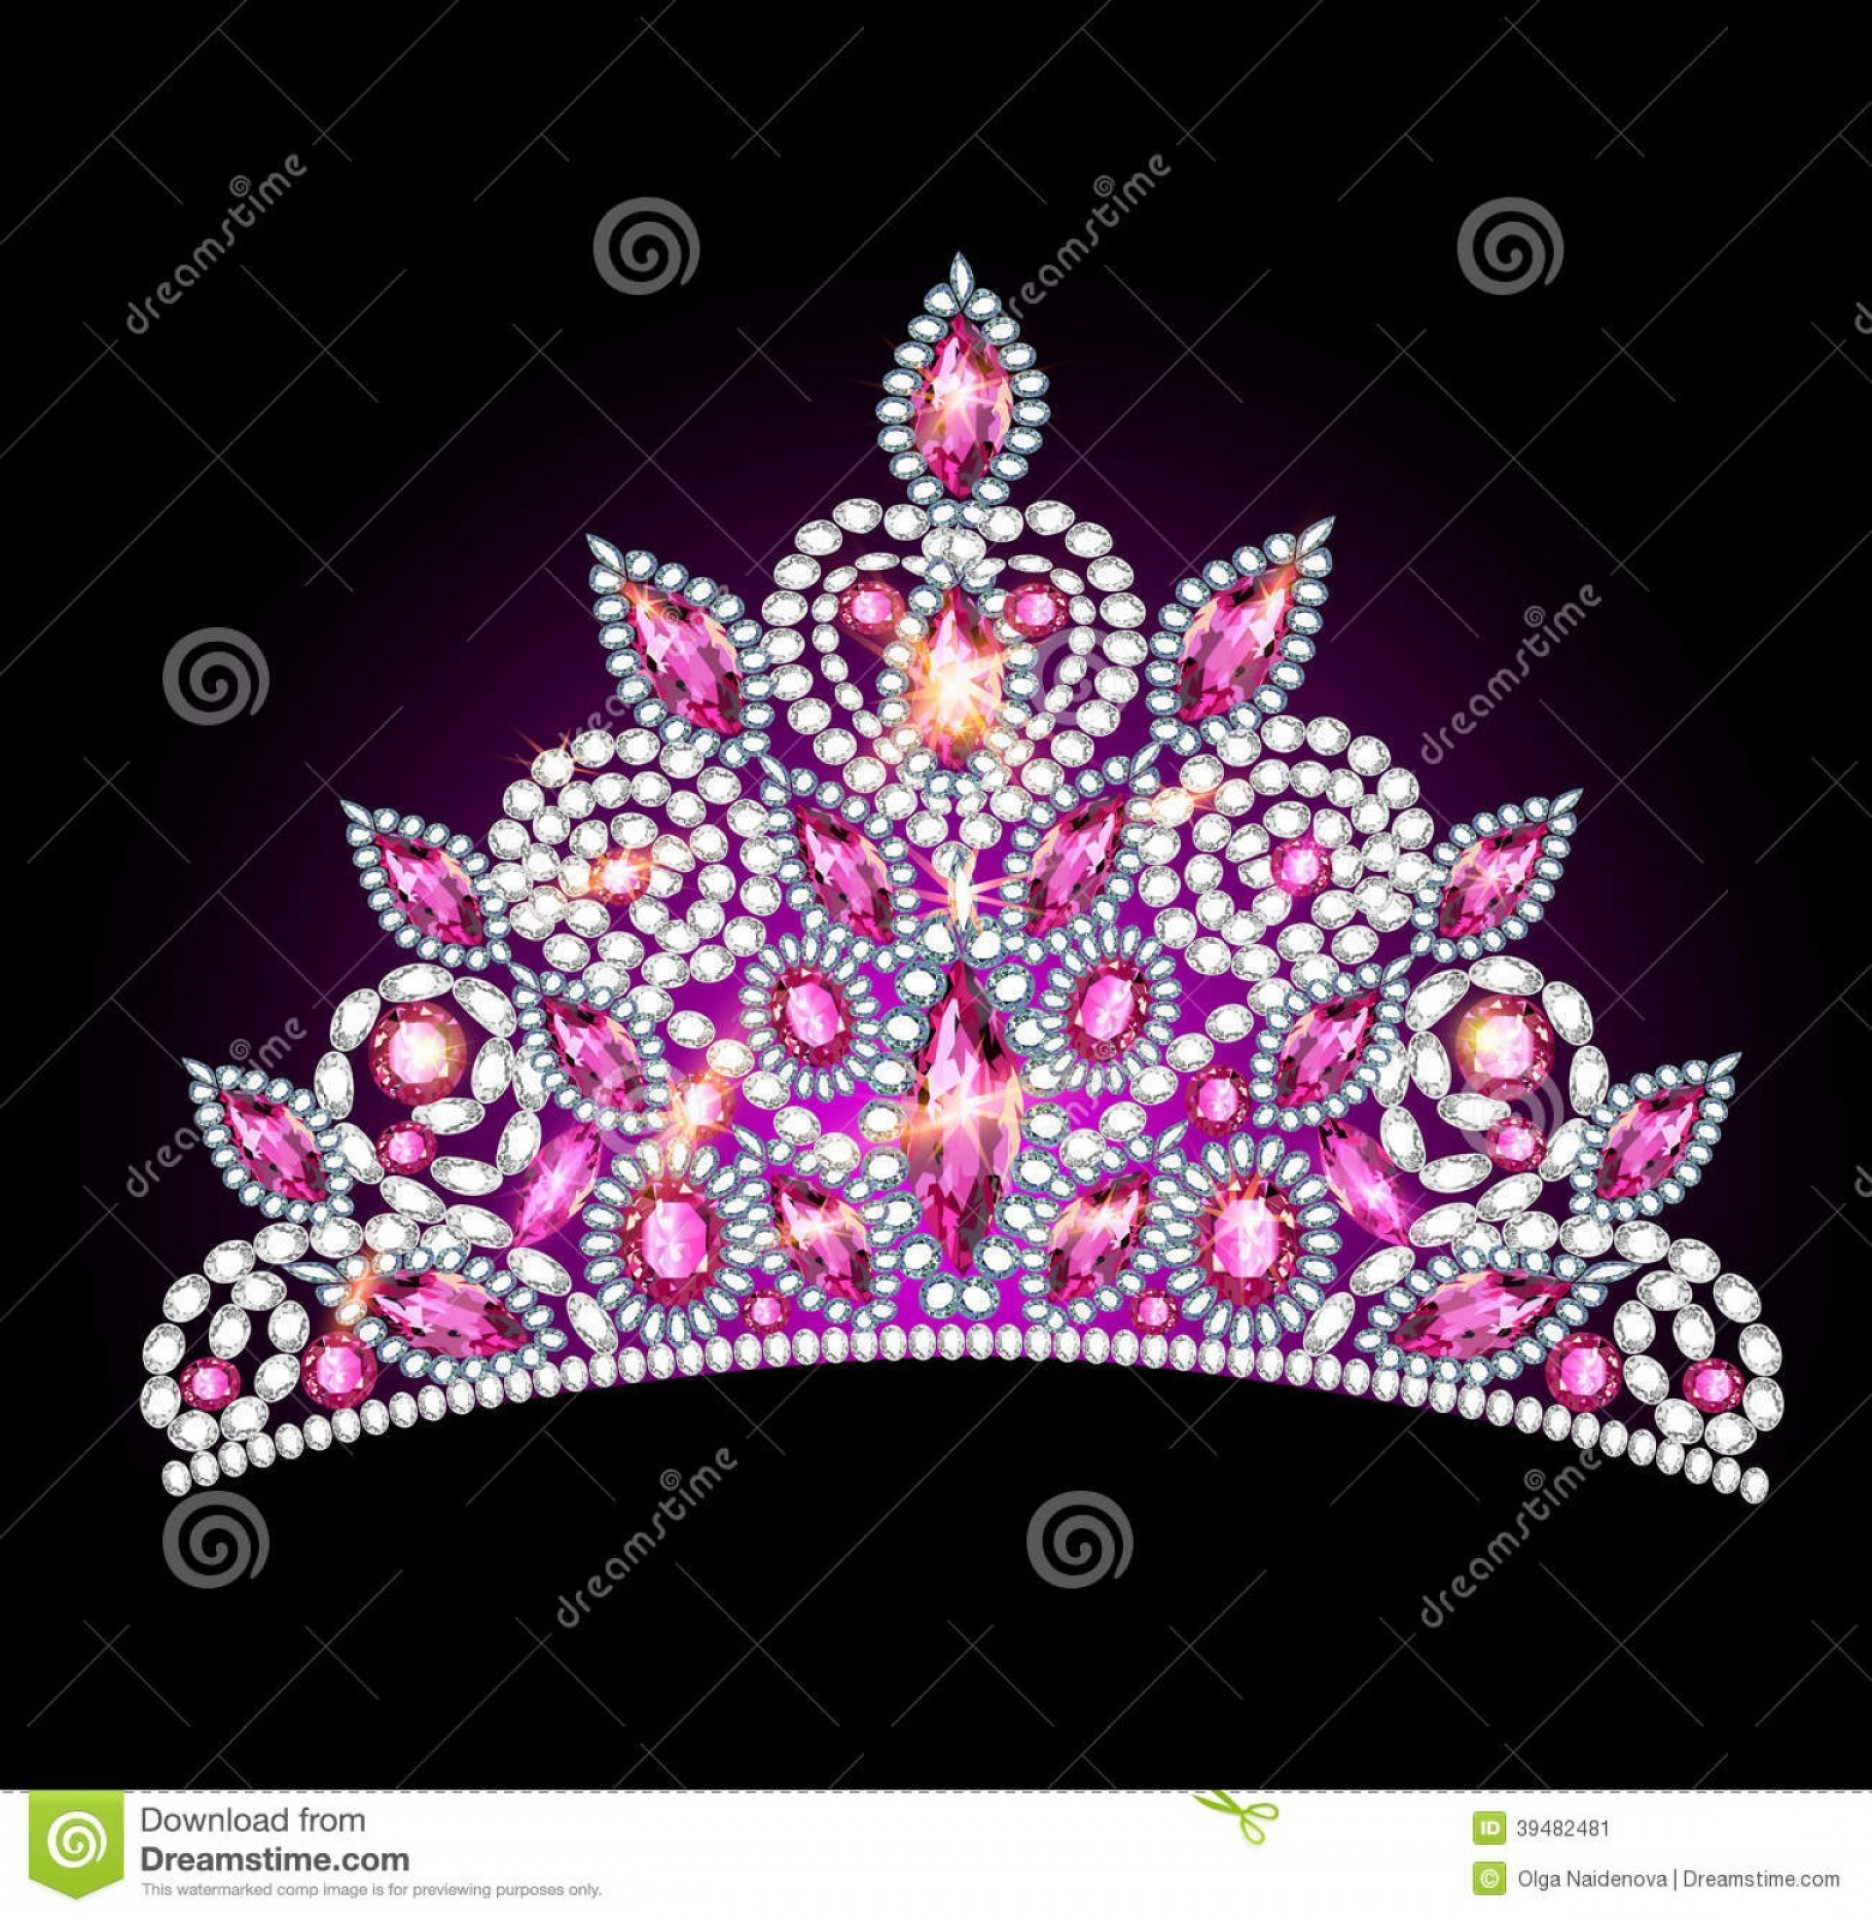 Pageant Tiaras Vector: Stock Image Diamond Tiara Vector Illustrations Image